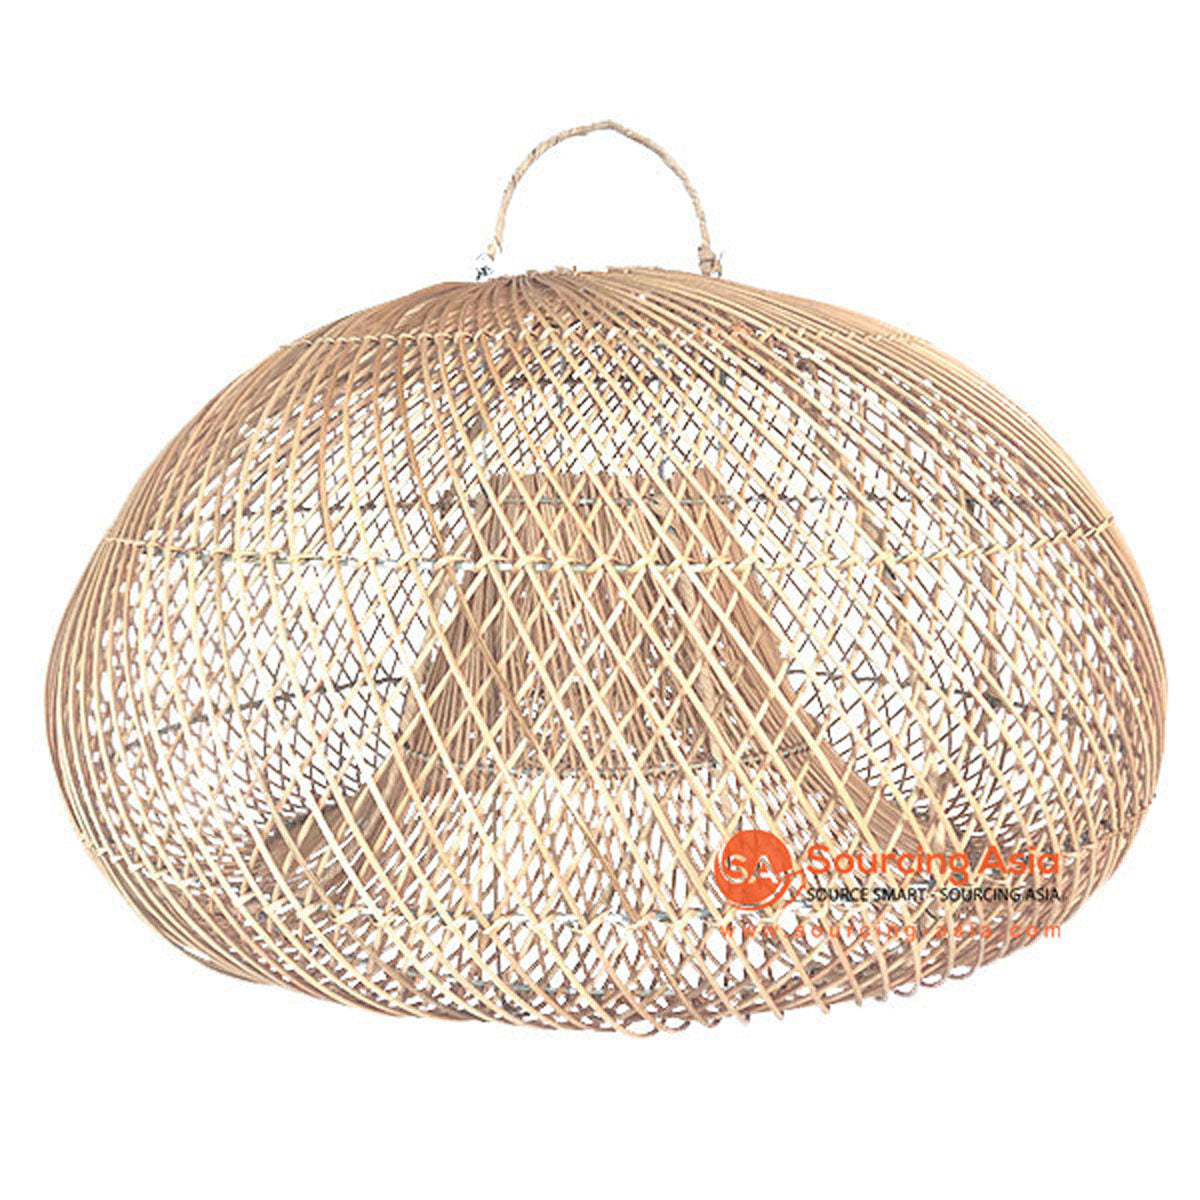 SHL064-5 NATURAL RATTAN PENDANT LAMP